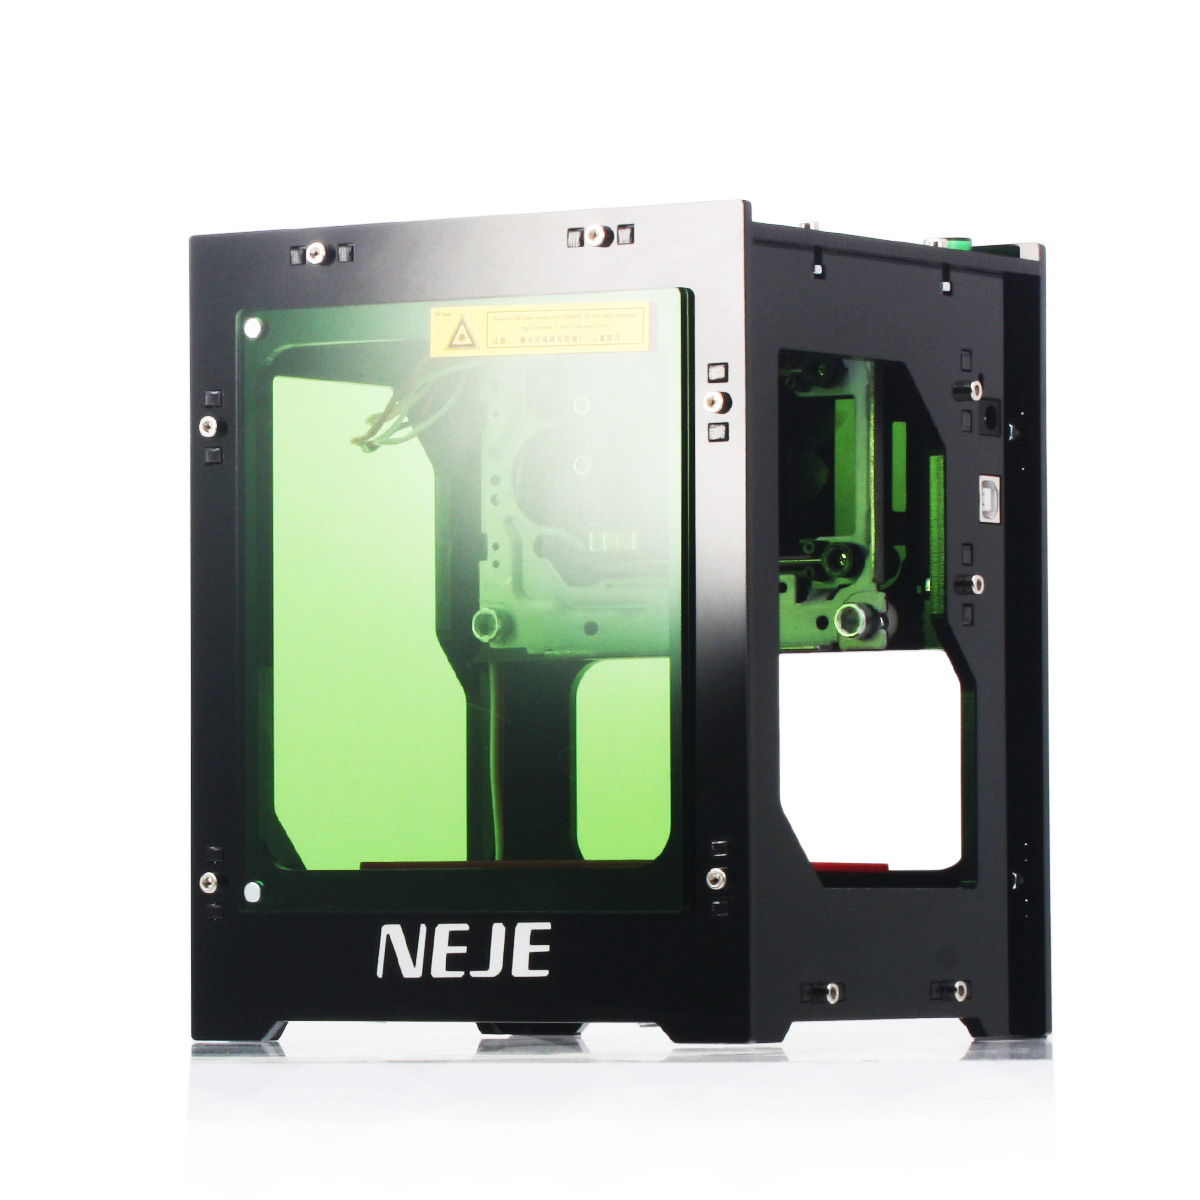 $40 OFF for NEJE 3000mW Laser Engraver S